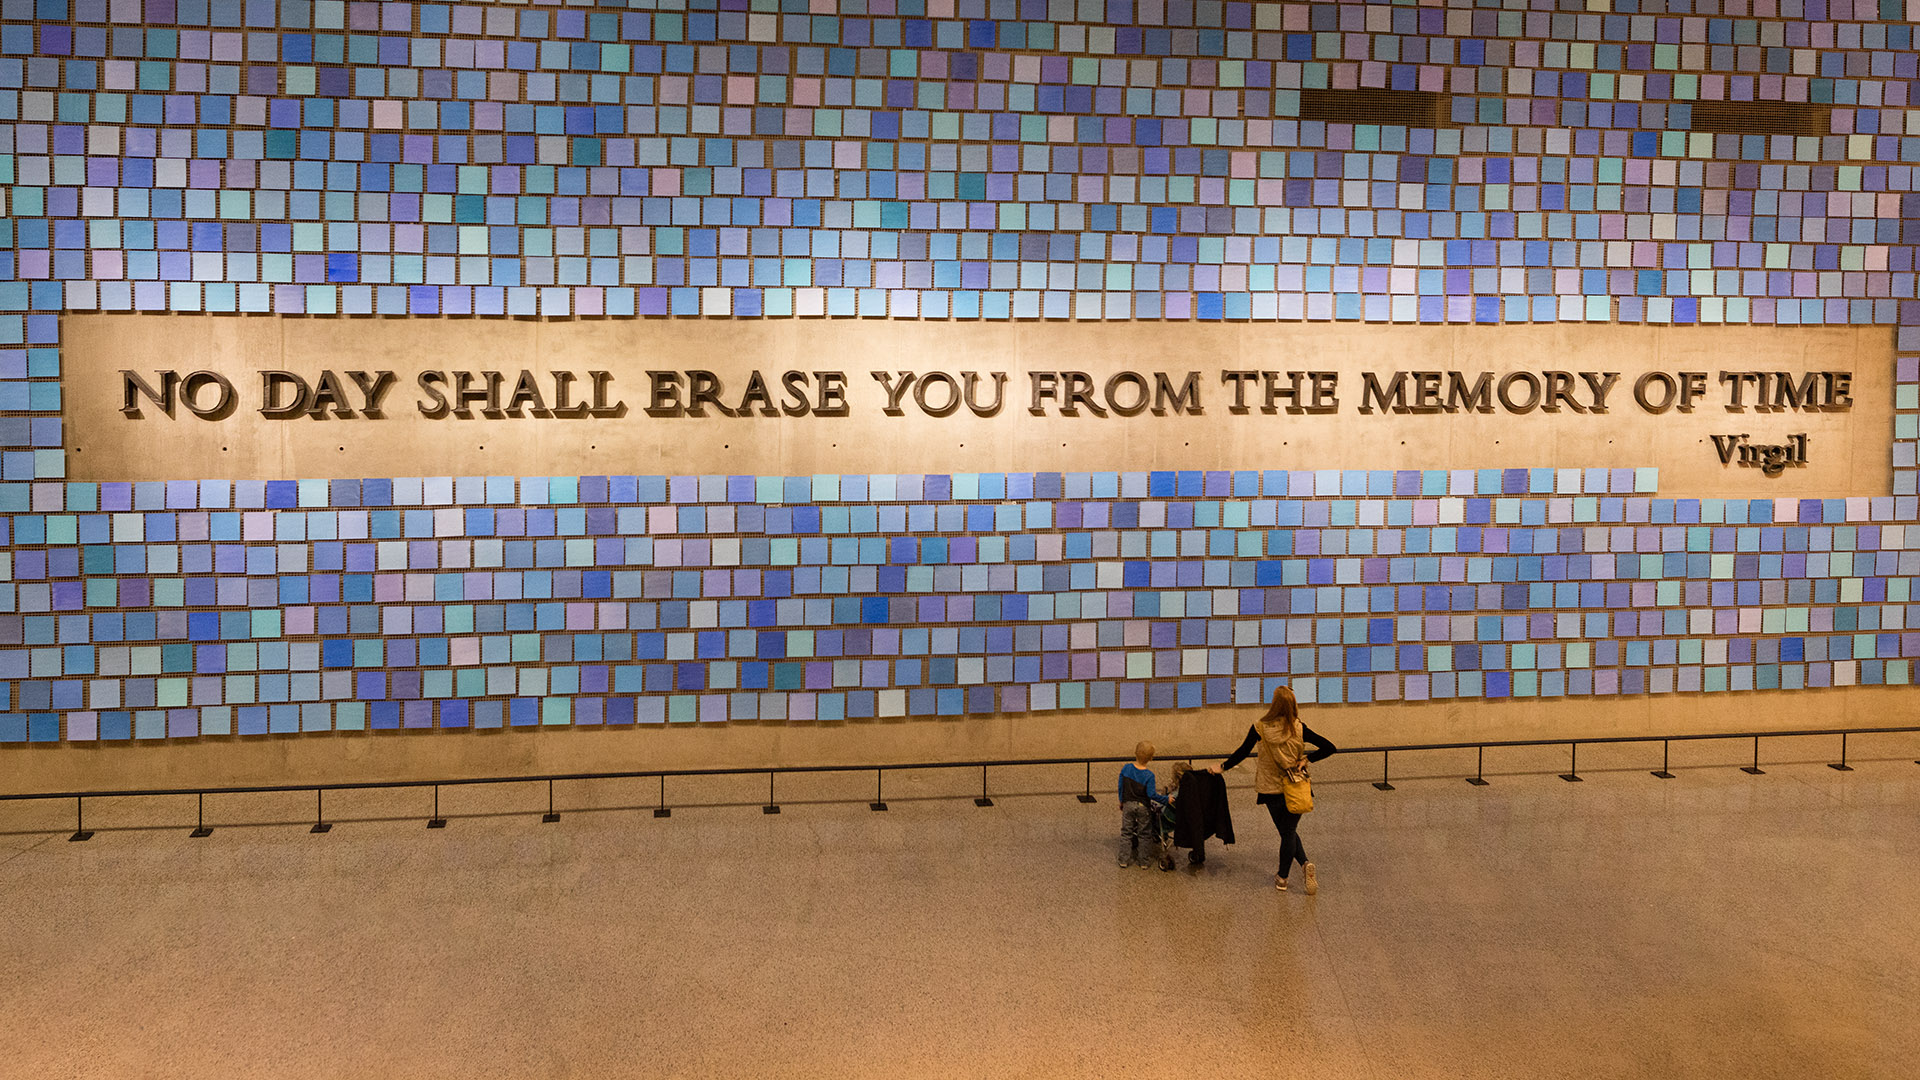 """No day shall erase you from the memory of time"" is a quote by Virgil that adorns a wall in the 911 Memorial Museum"